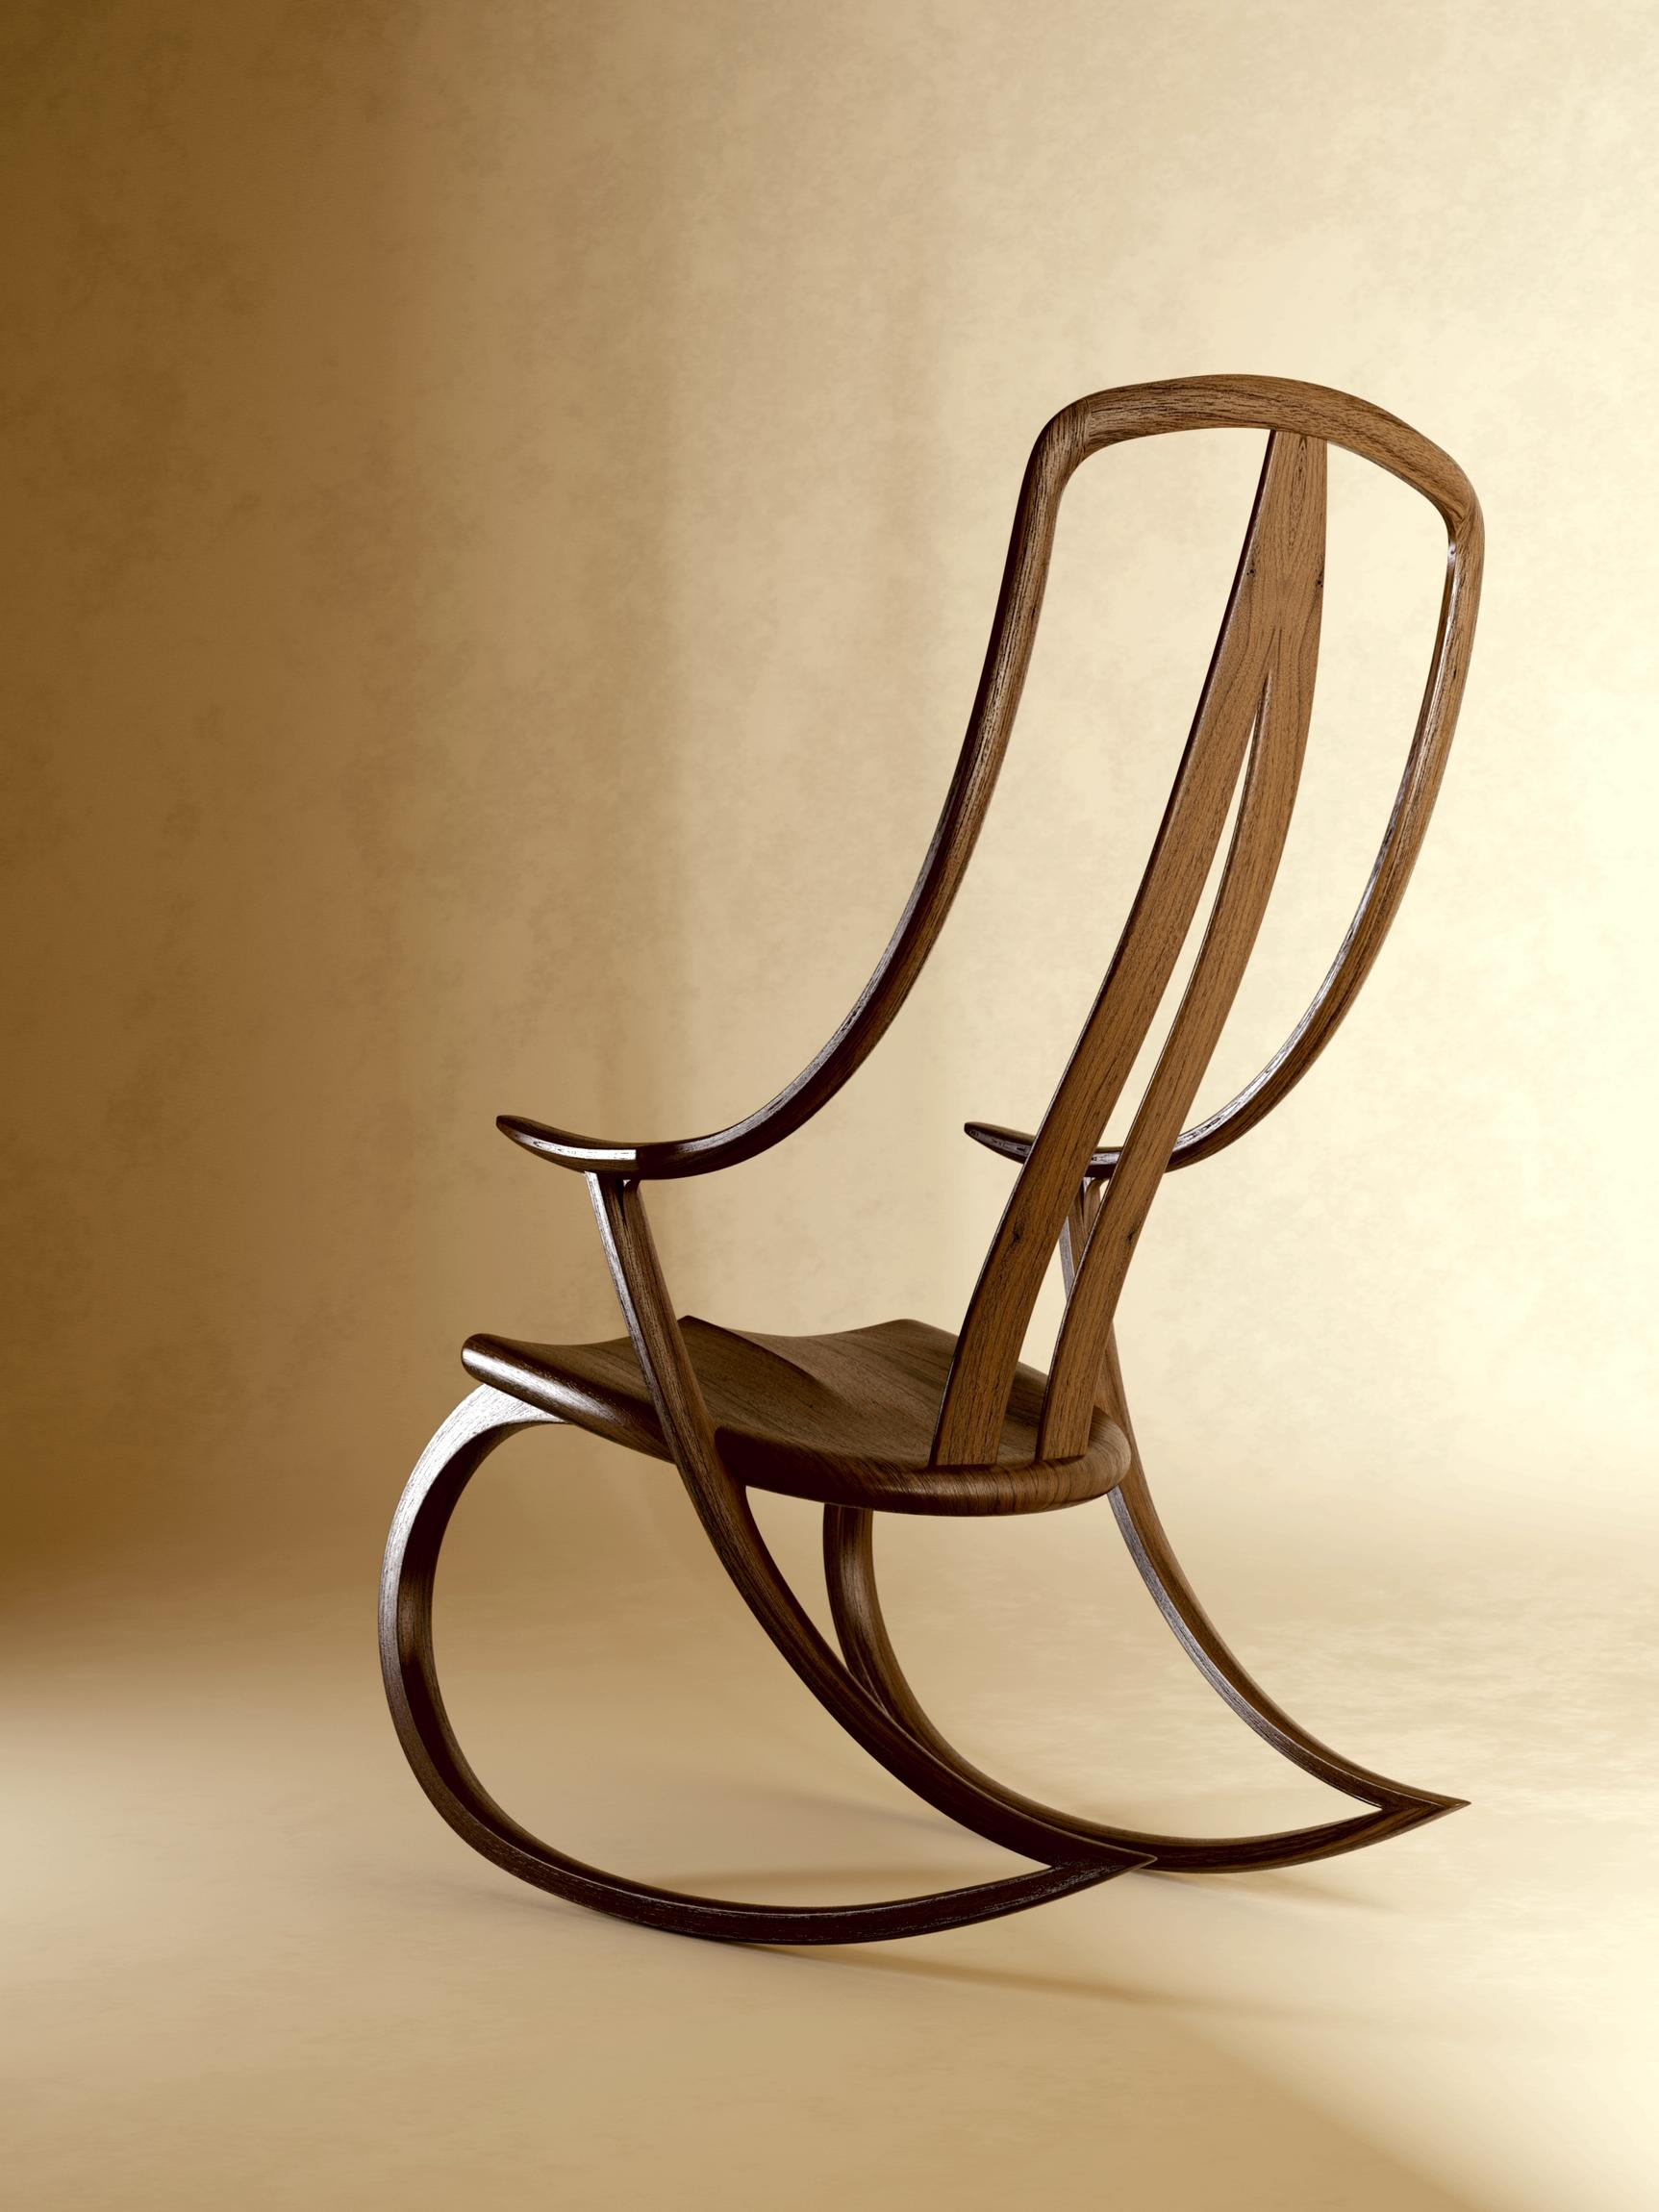 Rocking_Chair_-_David_Haig_001.jpg